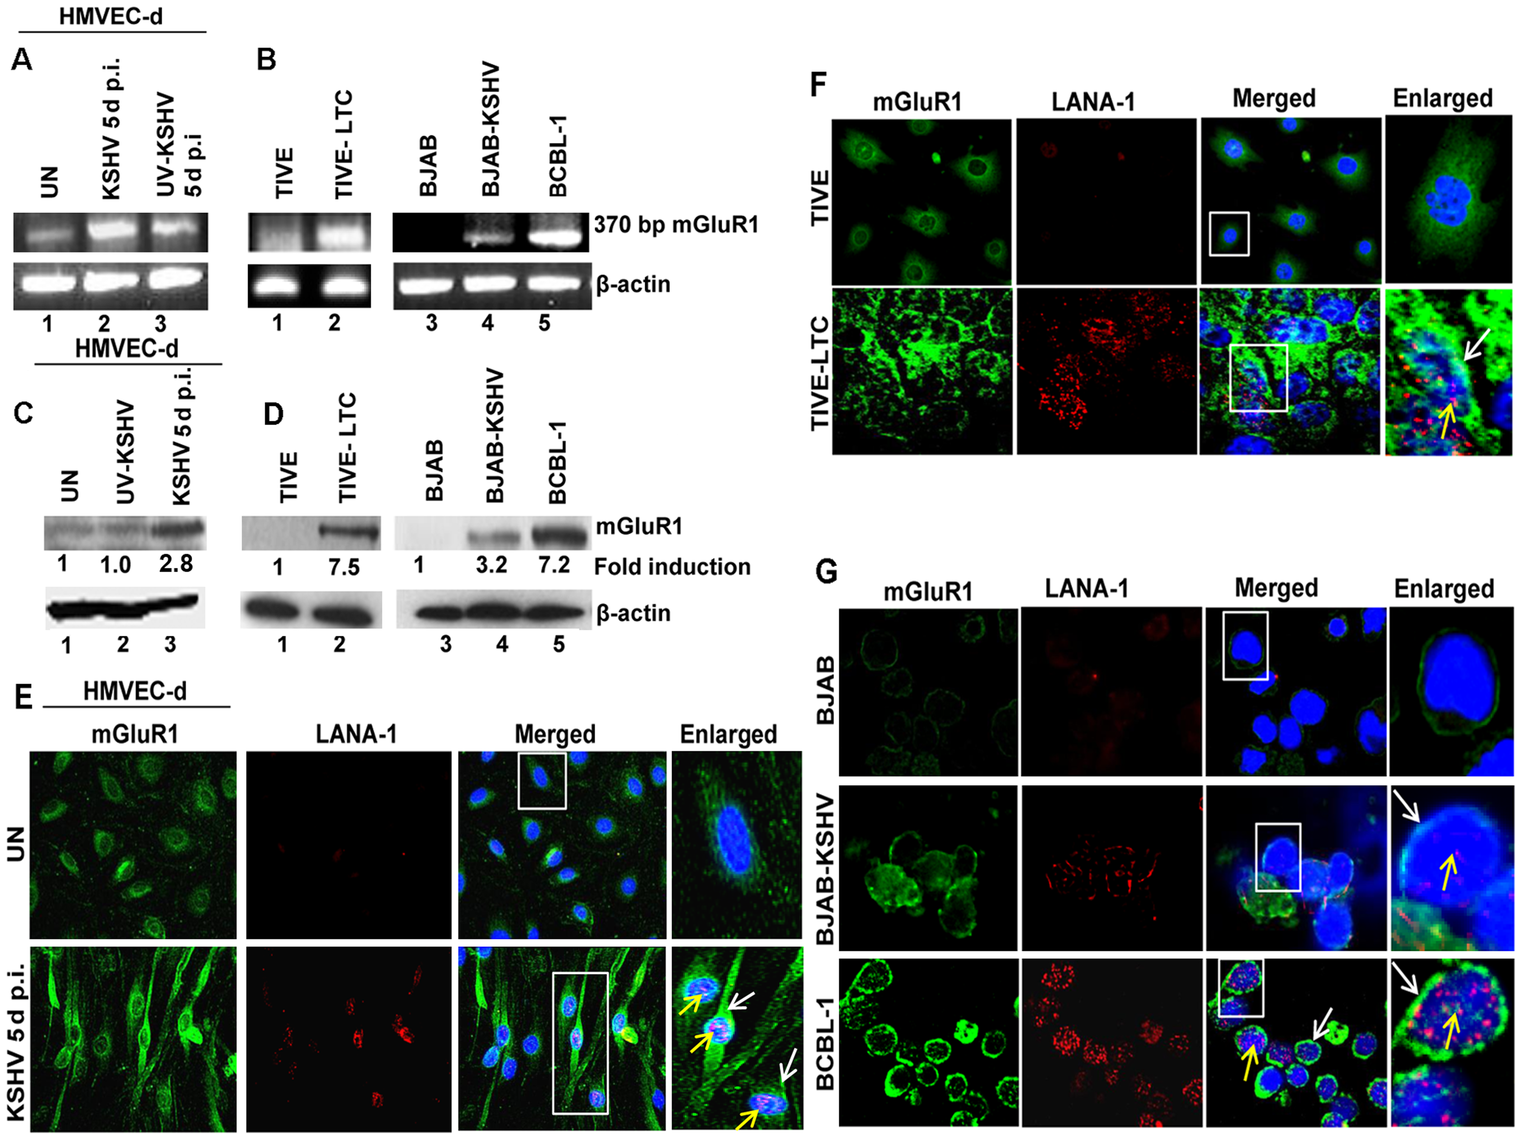 mGluR1 expression is upregulated in KSHV infected cells.